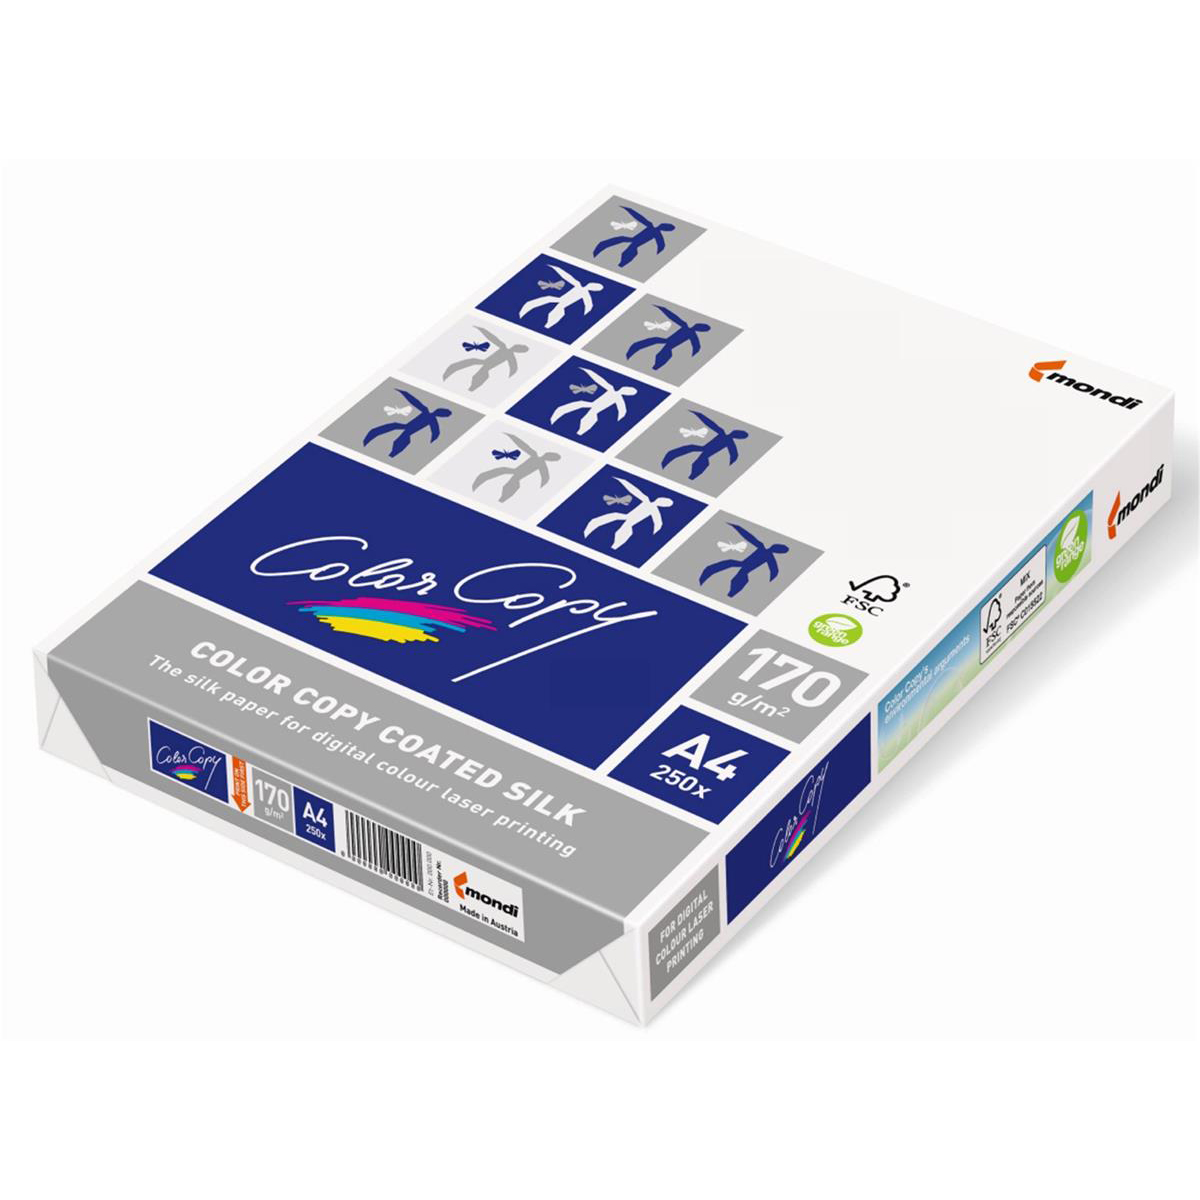 Card (160g+) Color Copy Card Premium Coated Silk A4 170gsm FSC White Ref CCS0170 250 Sheets